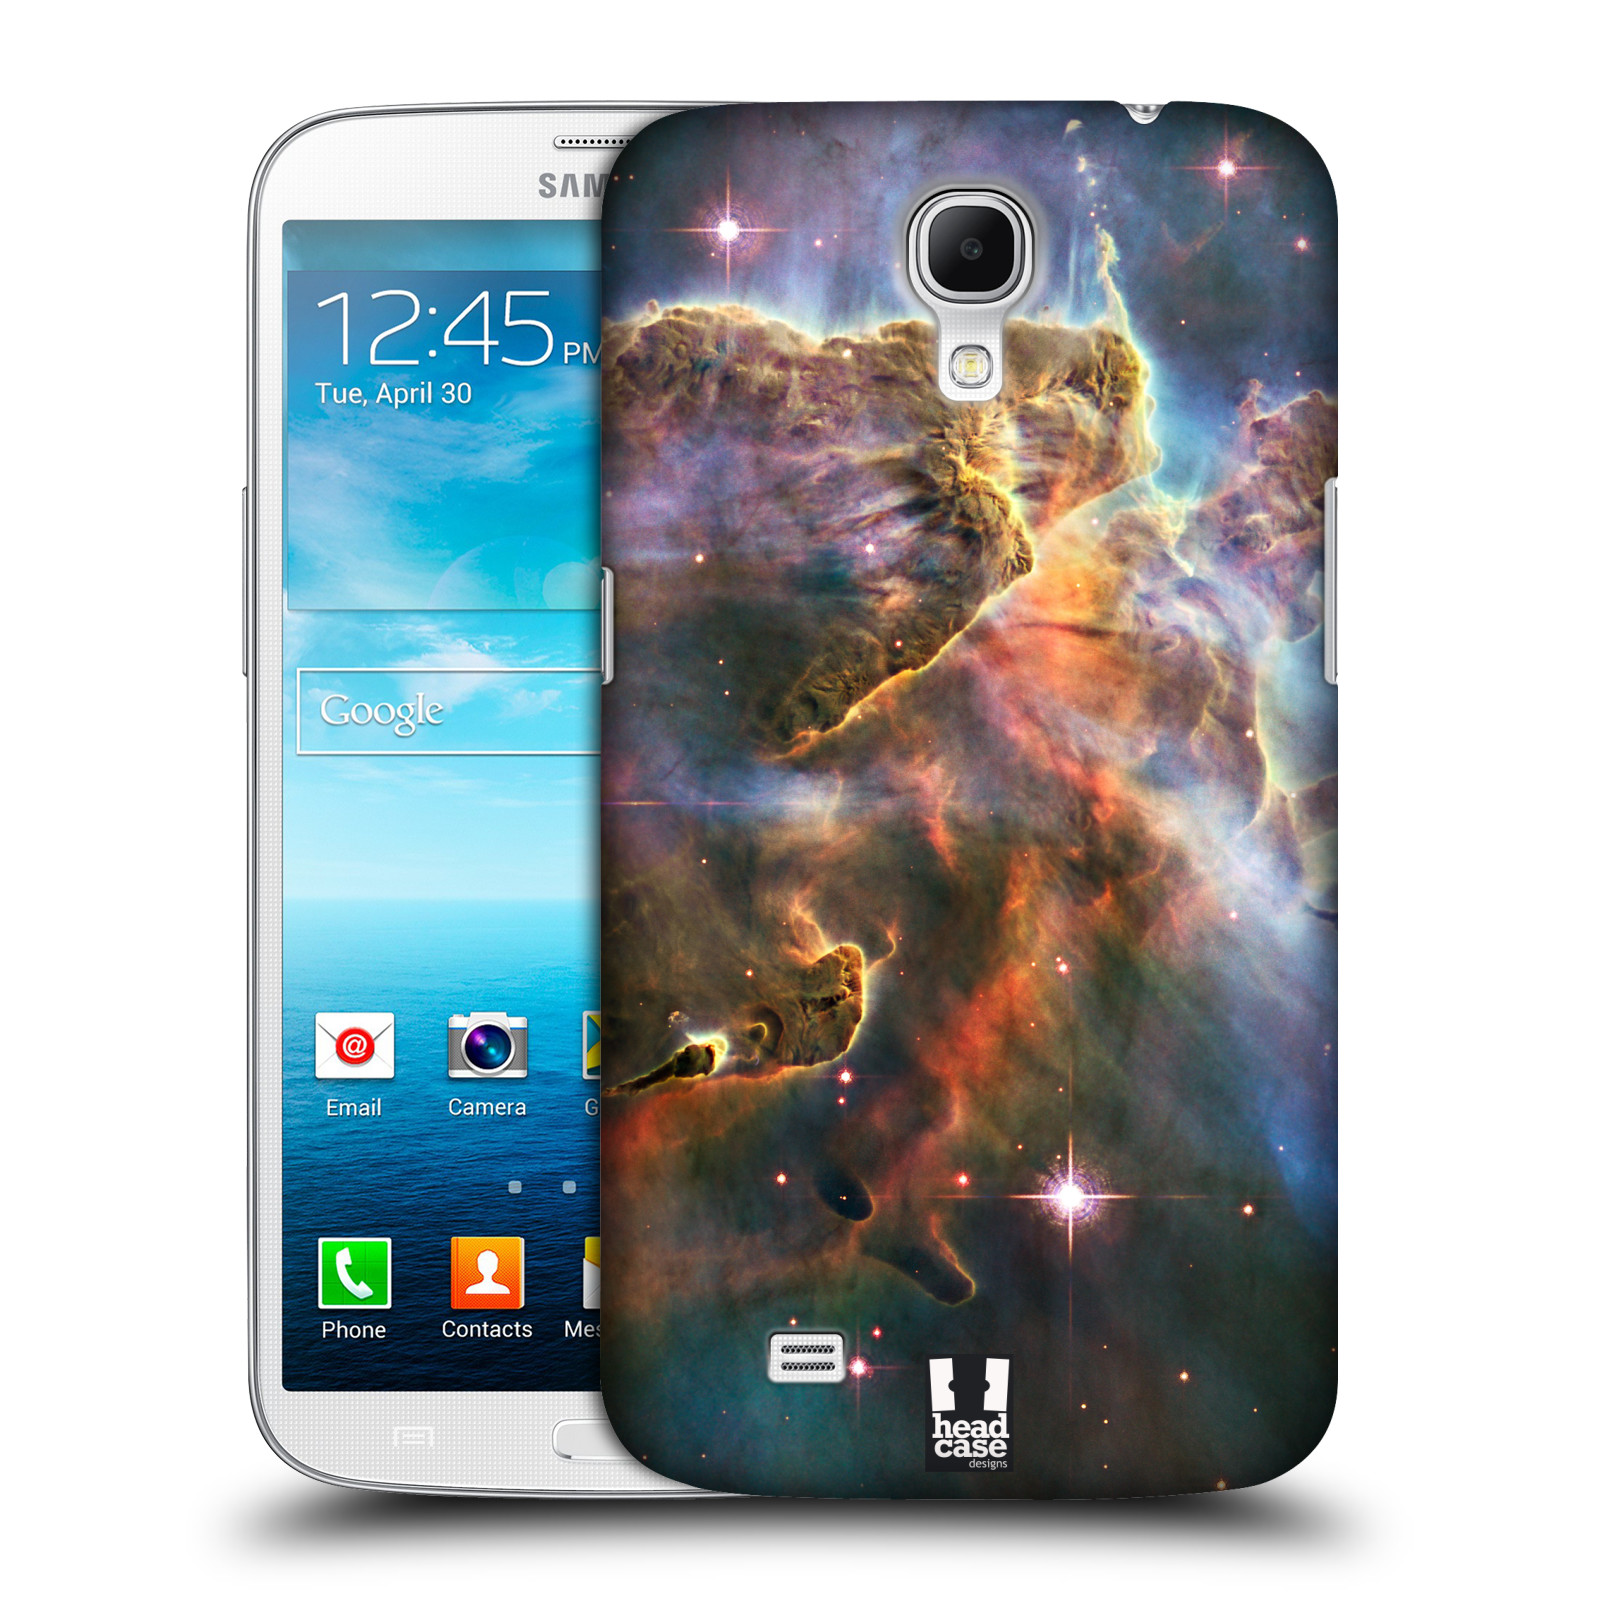 Head case designs outer space hard back case for samsung for Design for outer space